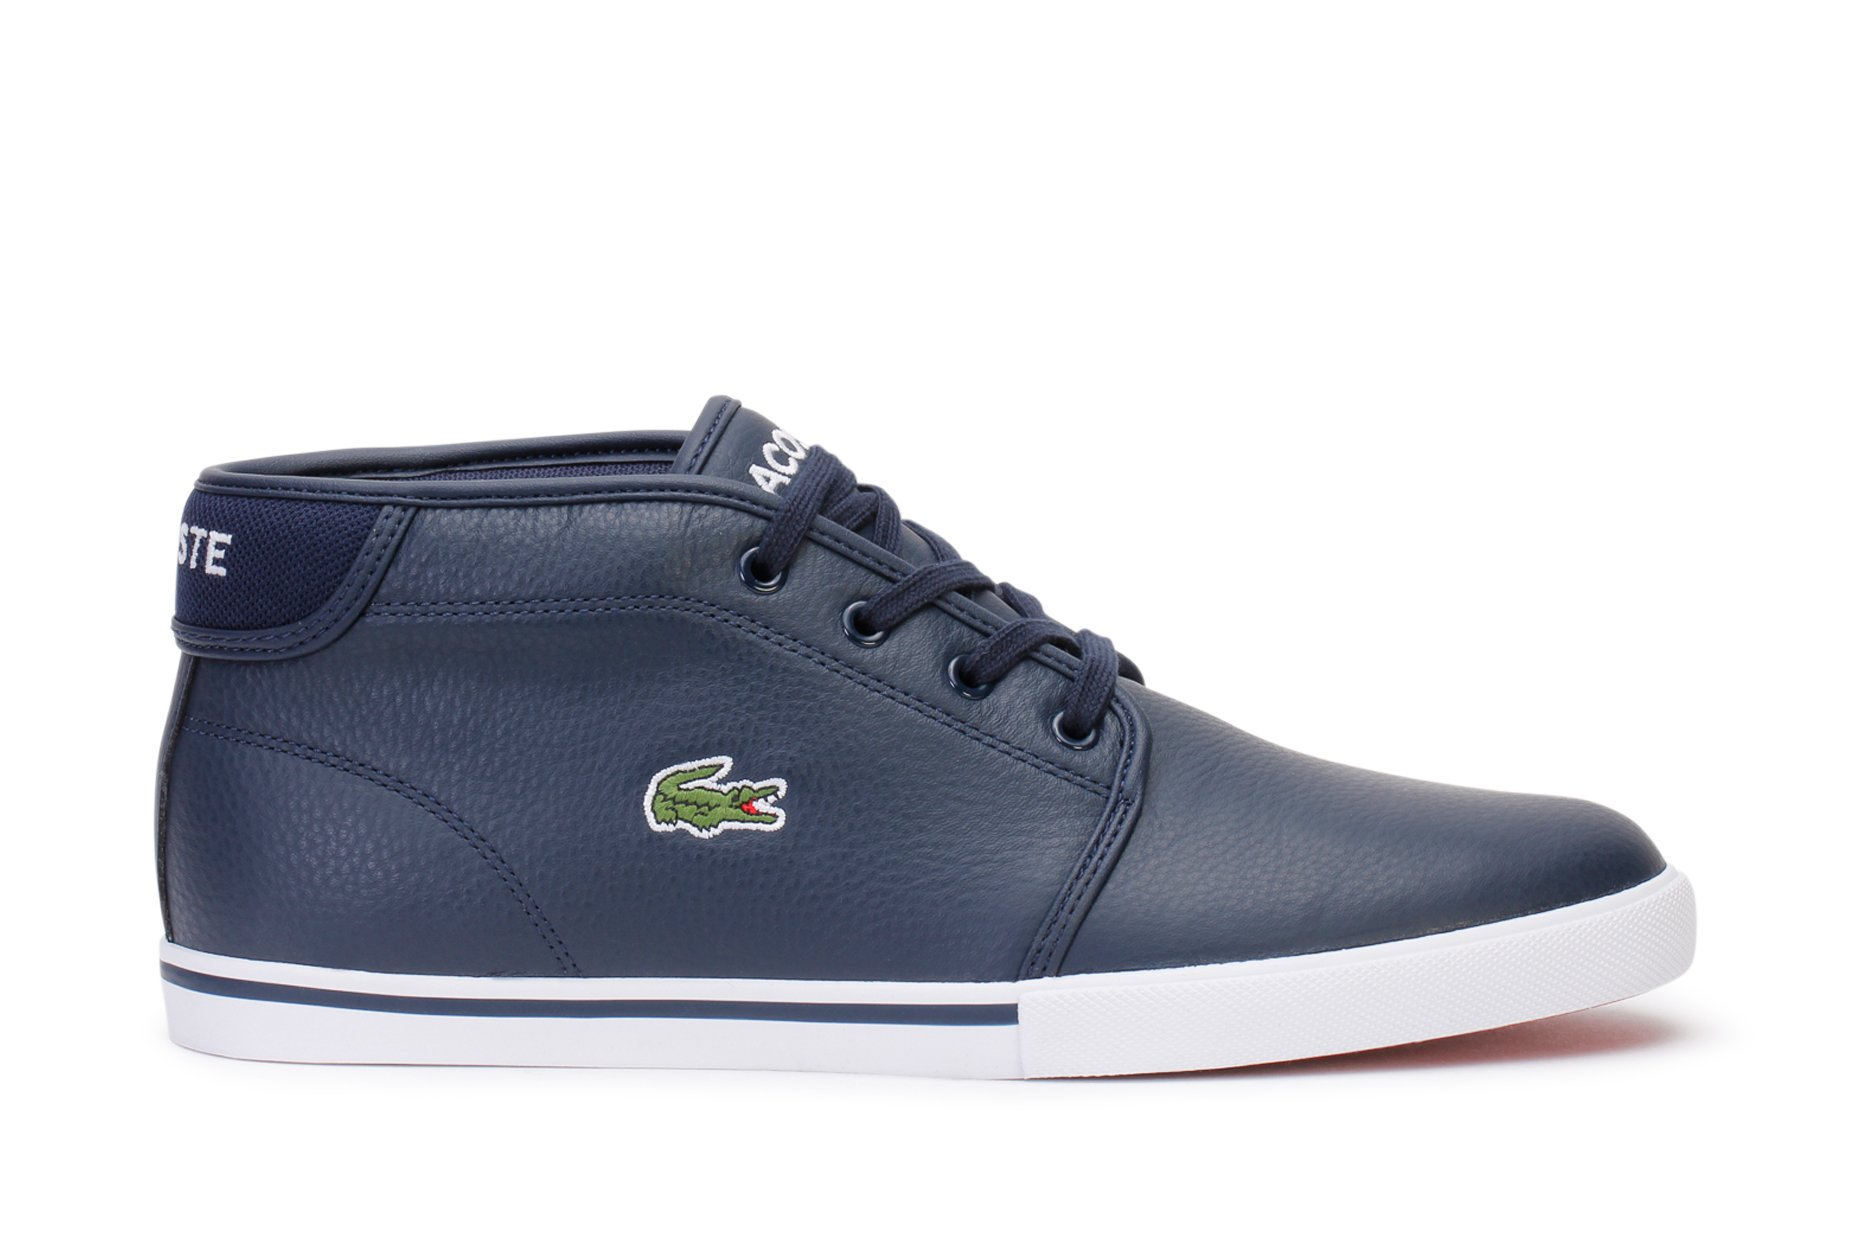 Lacoste Men's Ampthill Chukka Sneakers,NVY/White Leather,9 M US